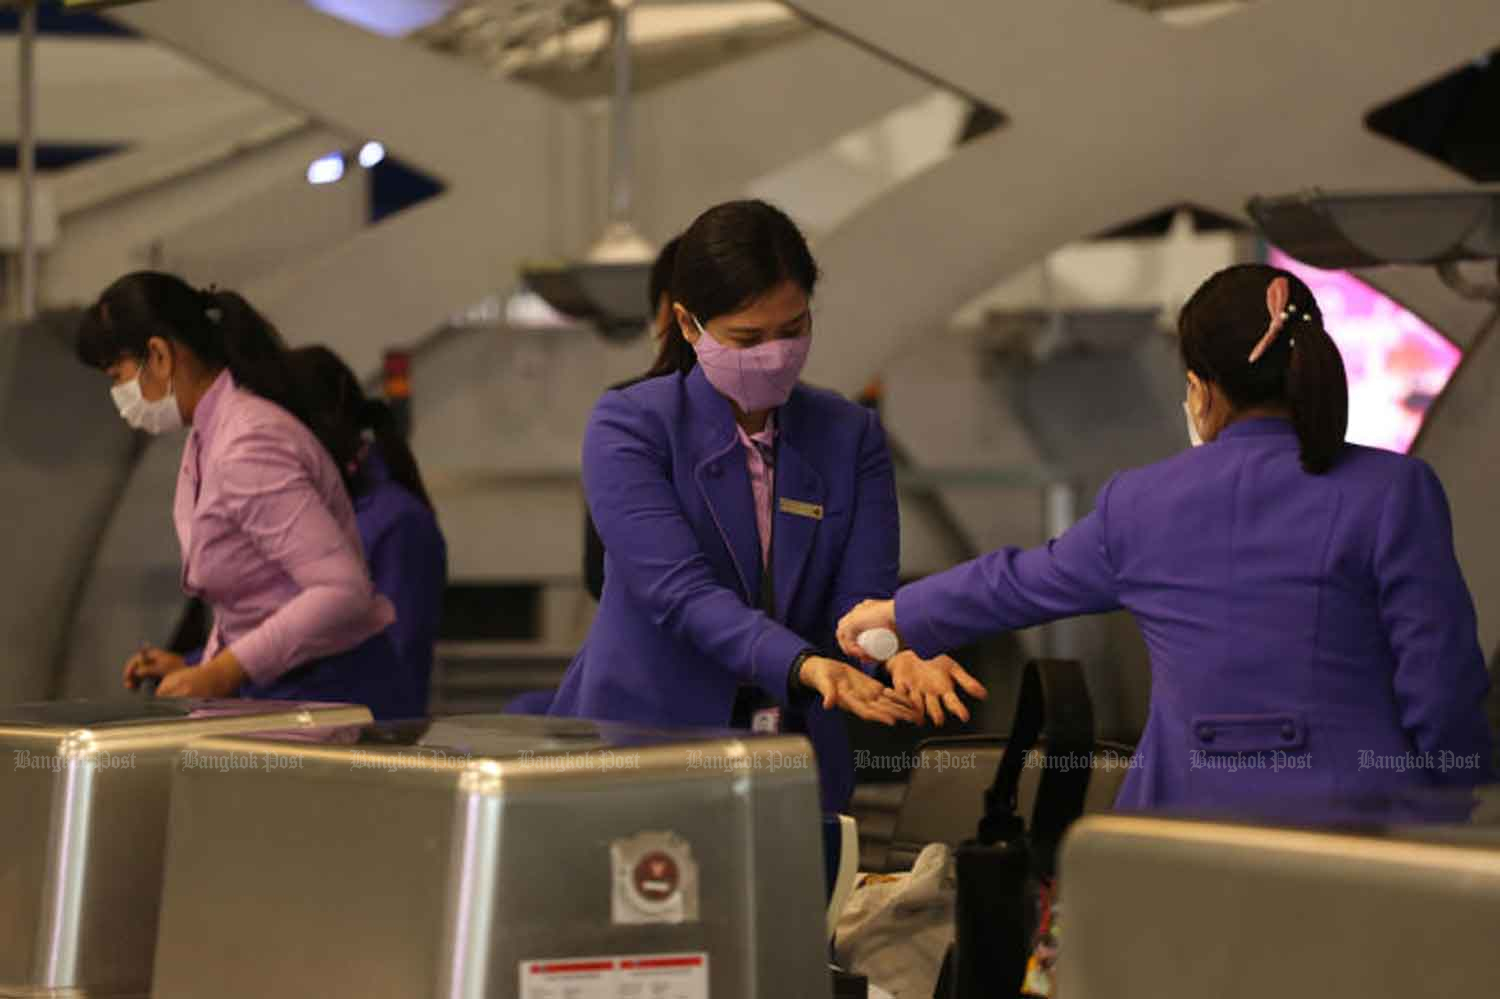 Thai Airways International staff work at Suvarnabhumi airport in Samut Prakan province on Tuesday as the management of the airline files for bankruptcy with the Central Bankruptcy Court. (Photo: Varuth Hirunyatheb)